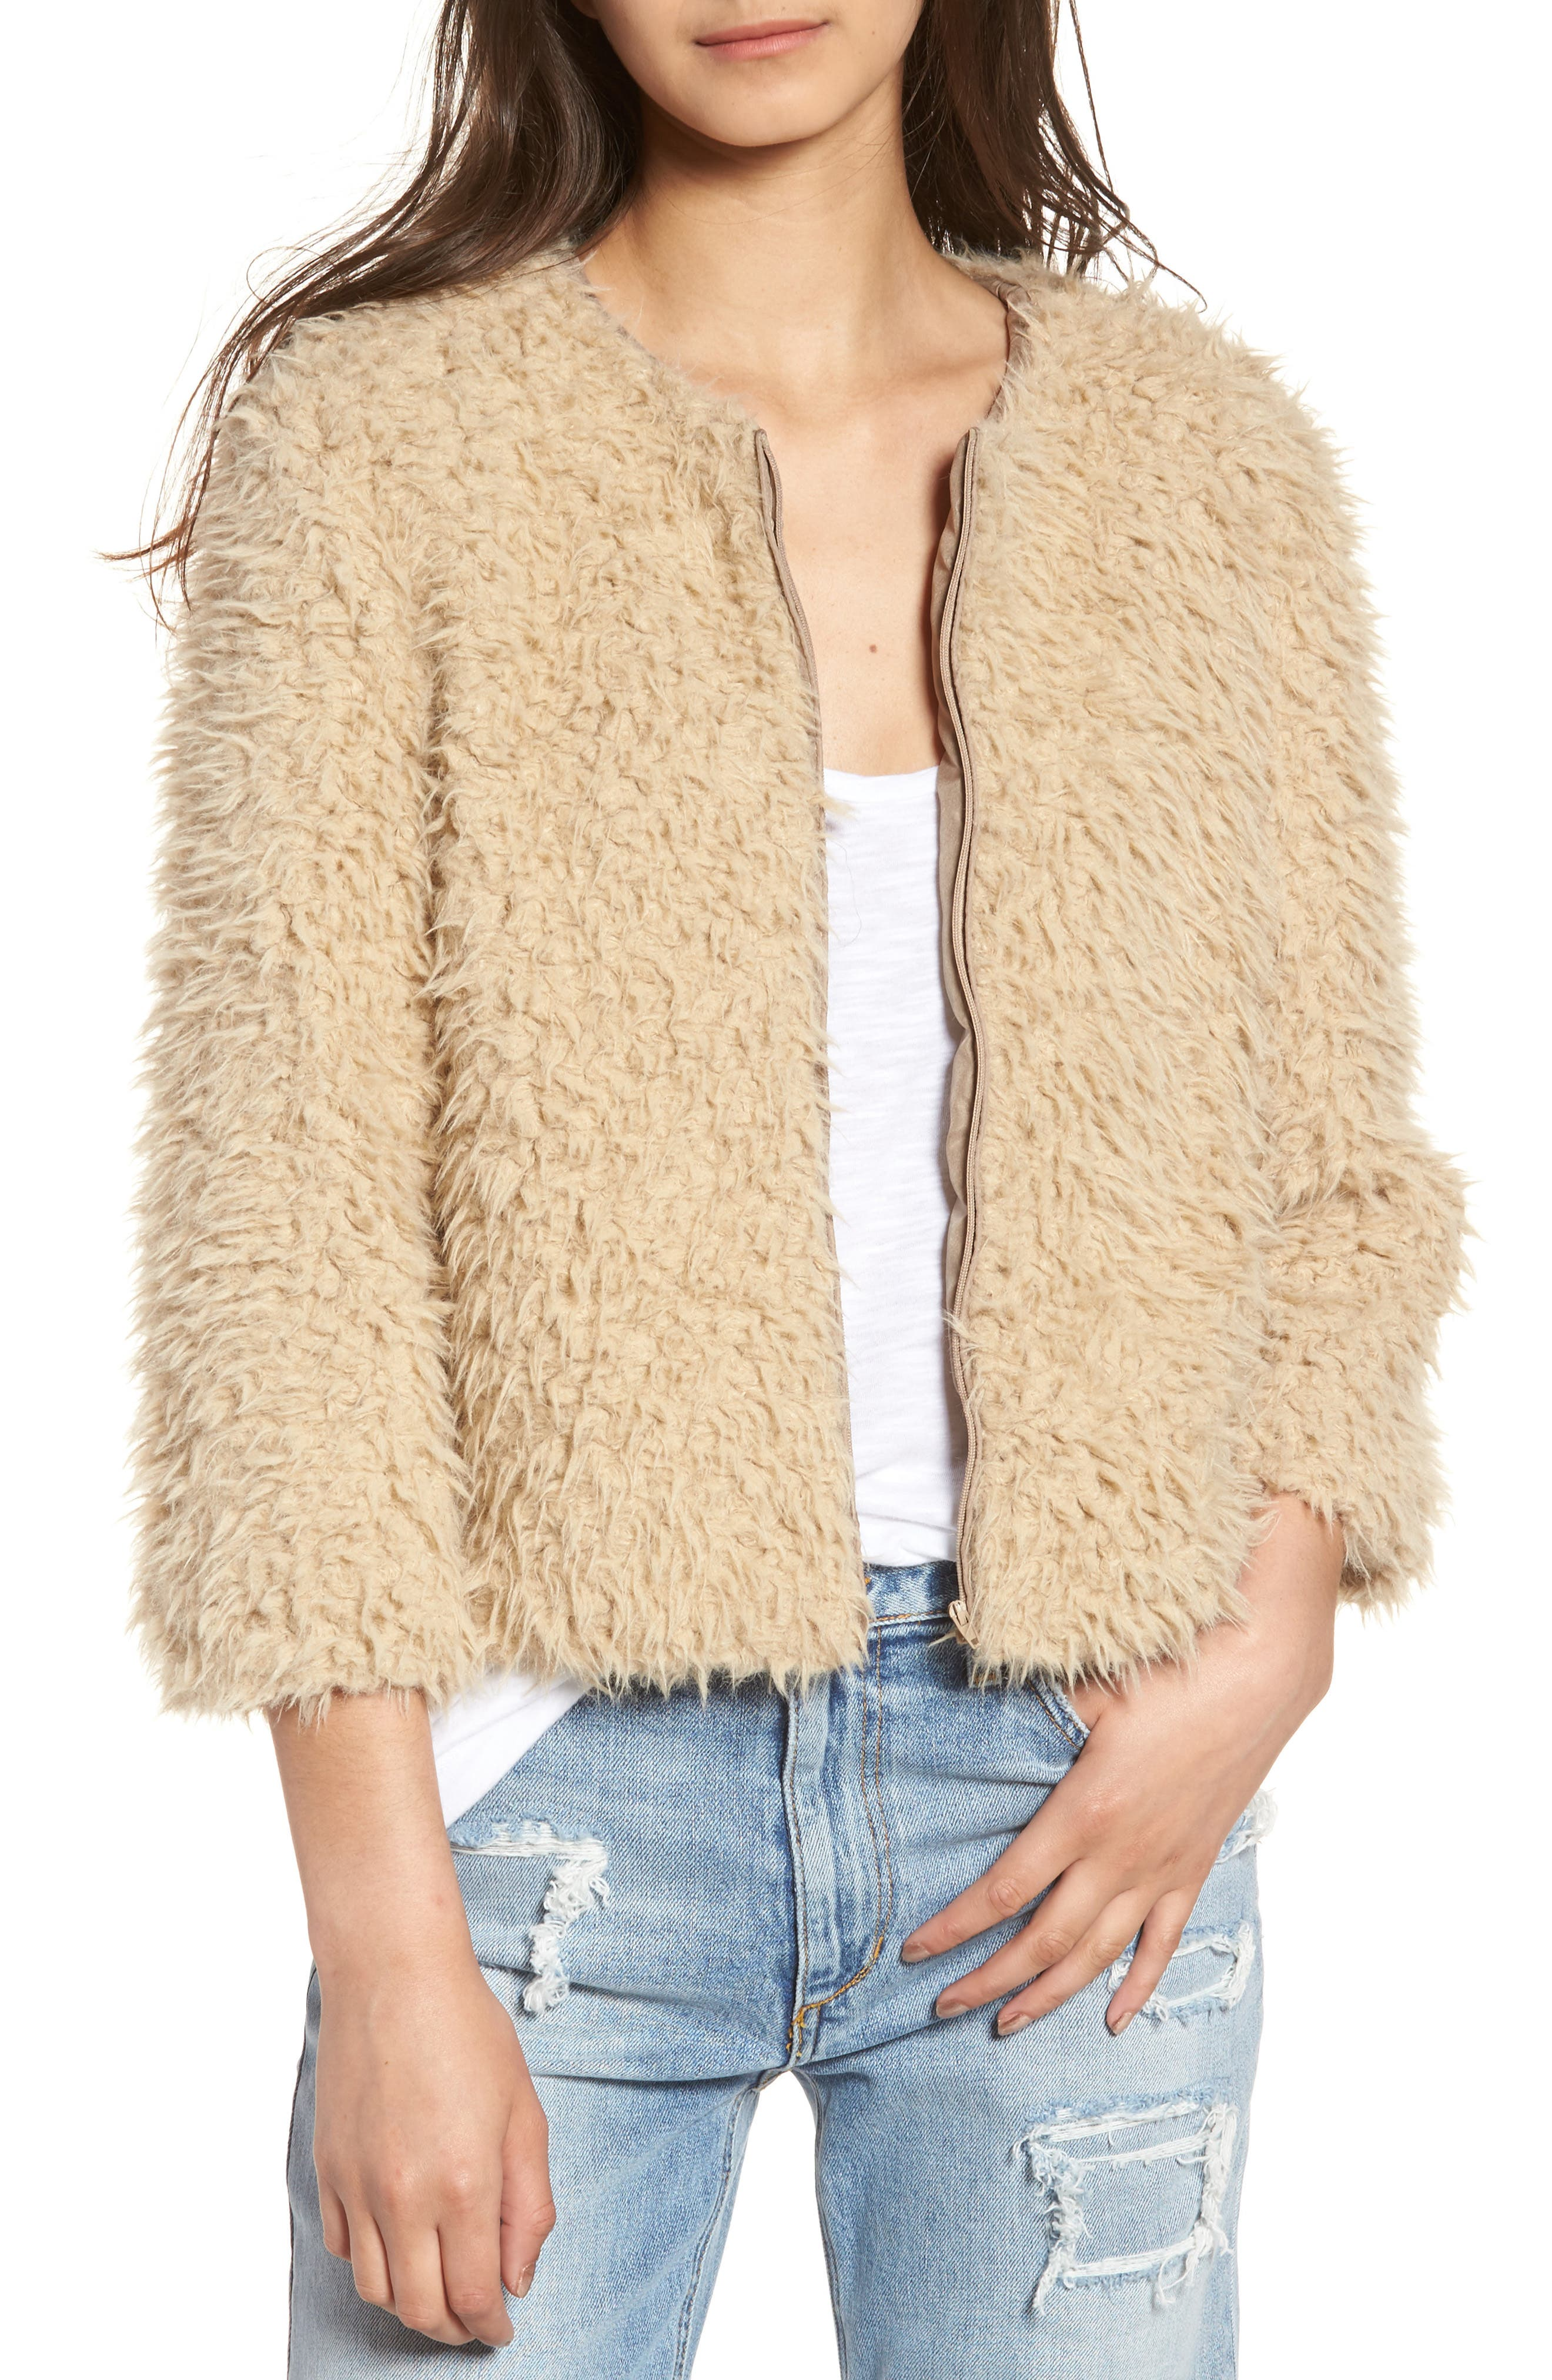 Macy Faux Fur Jacket,                             Main thumbnail 1, color,                             251